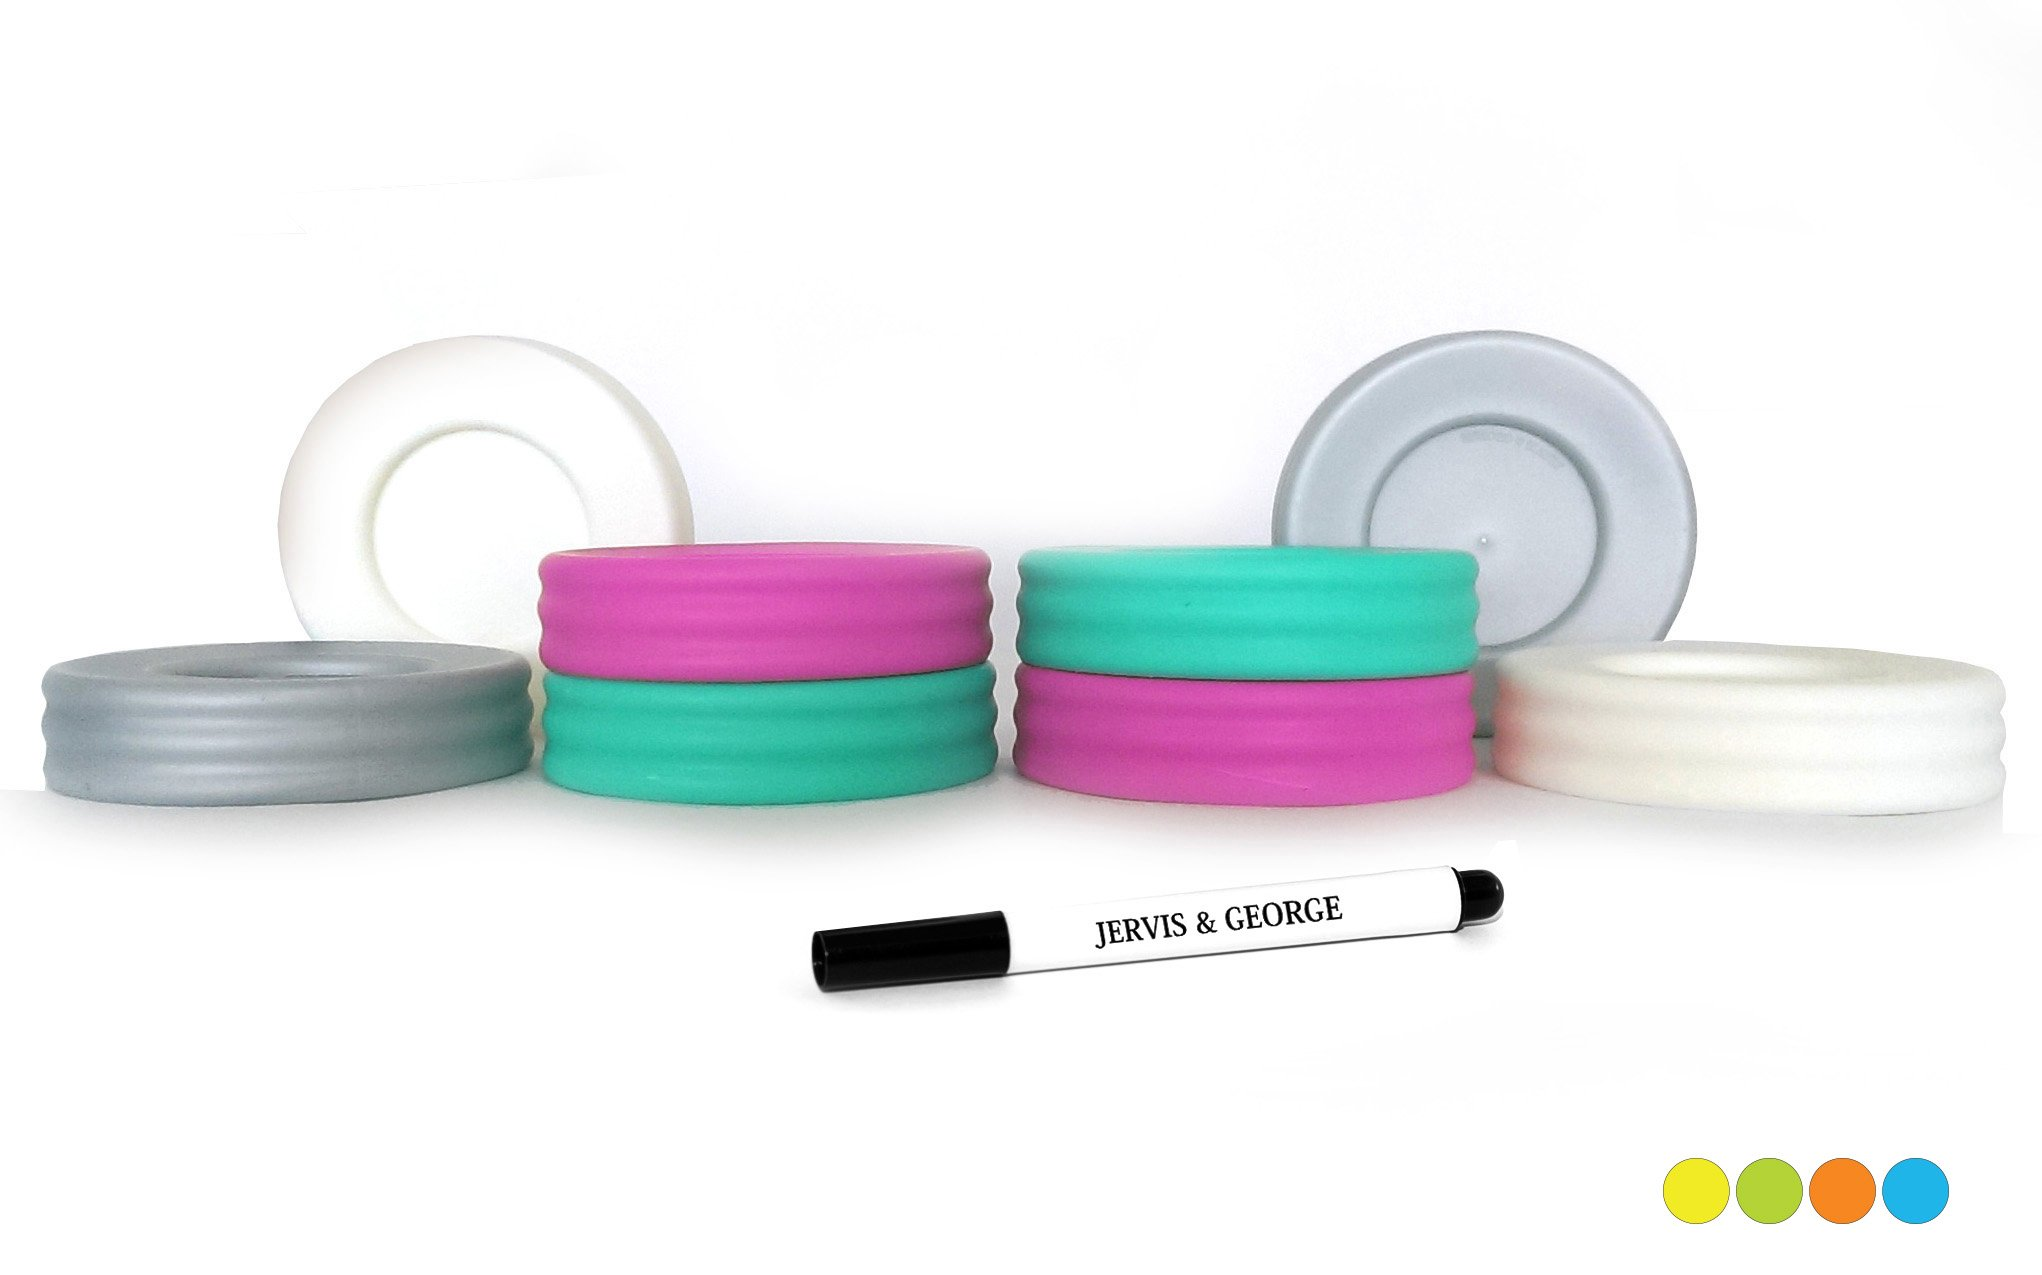 Mason Jar Lids - Compatible with Regular Mouth Size Ball Jars - Reusable and Leak Proof Plastic Lids are BPA Free - Includes Pen for Marking - Pink, Teal, Gray & White - Pack of 8